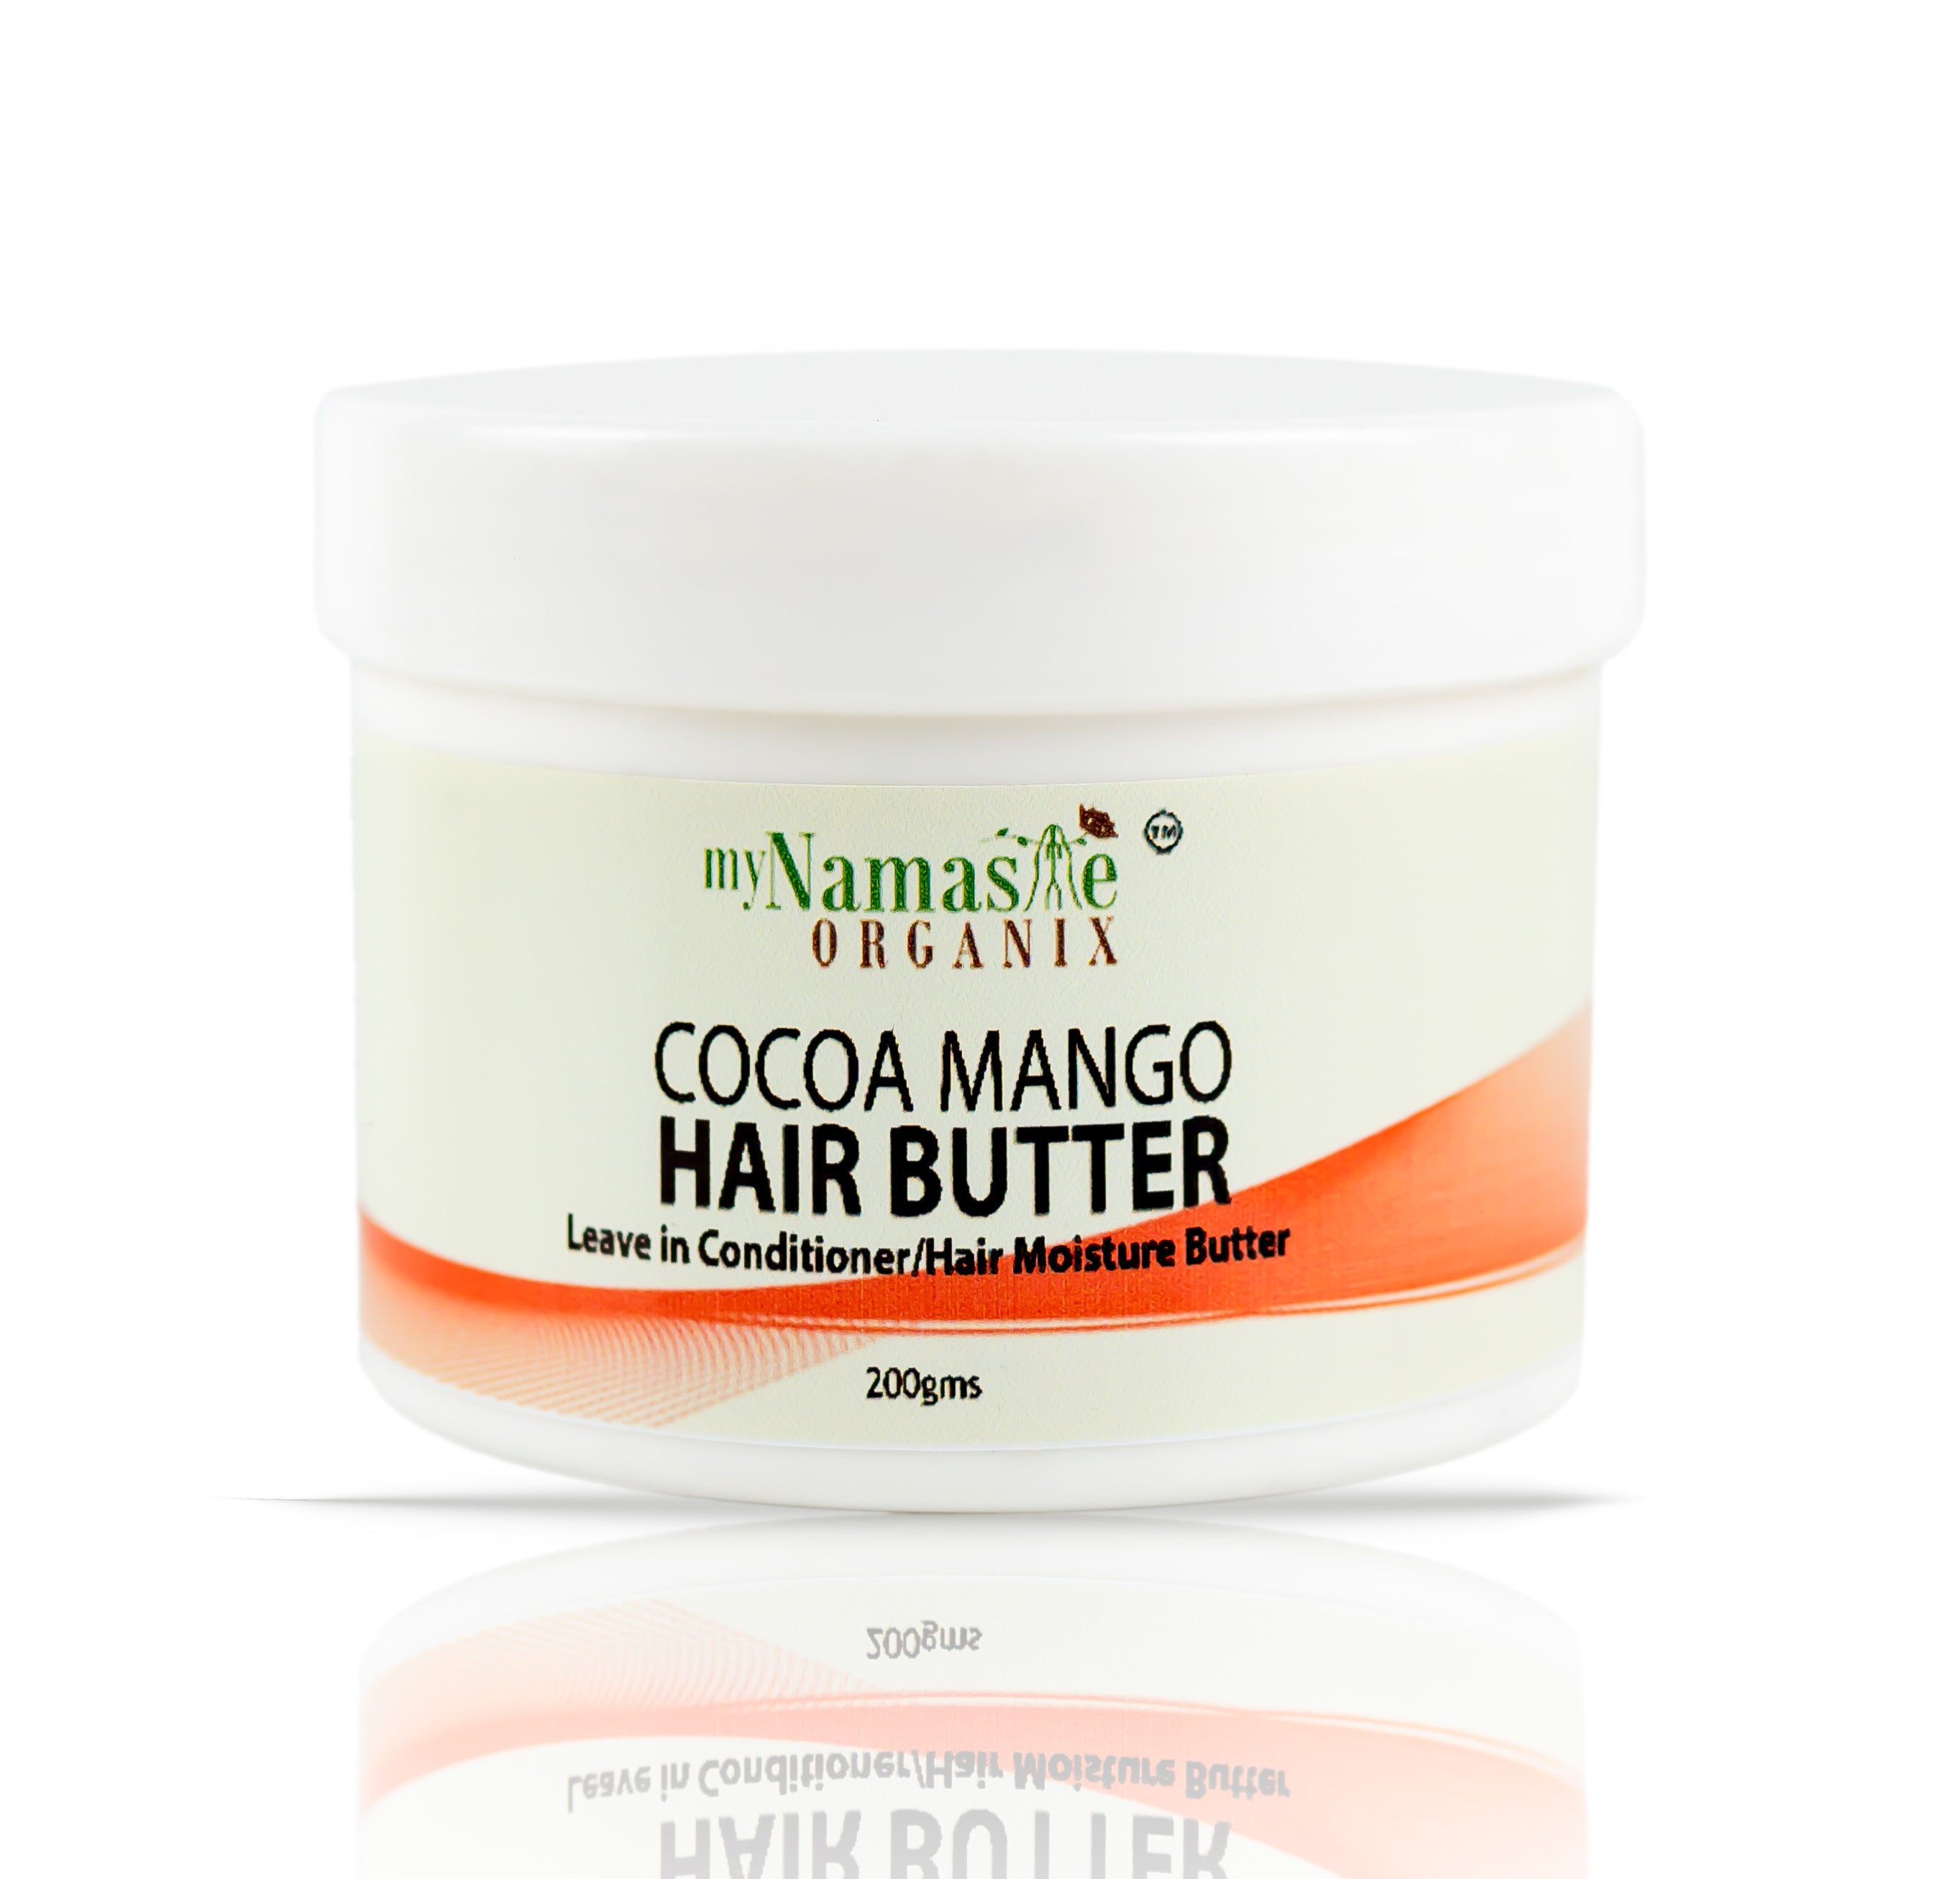 Cocoa Mango Hair Butter with Rosemary & Peppermint-Daily Hair and Scalp butter